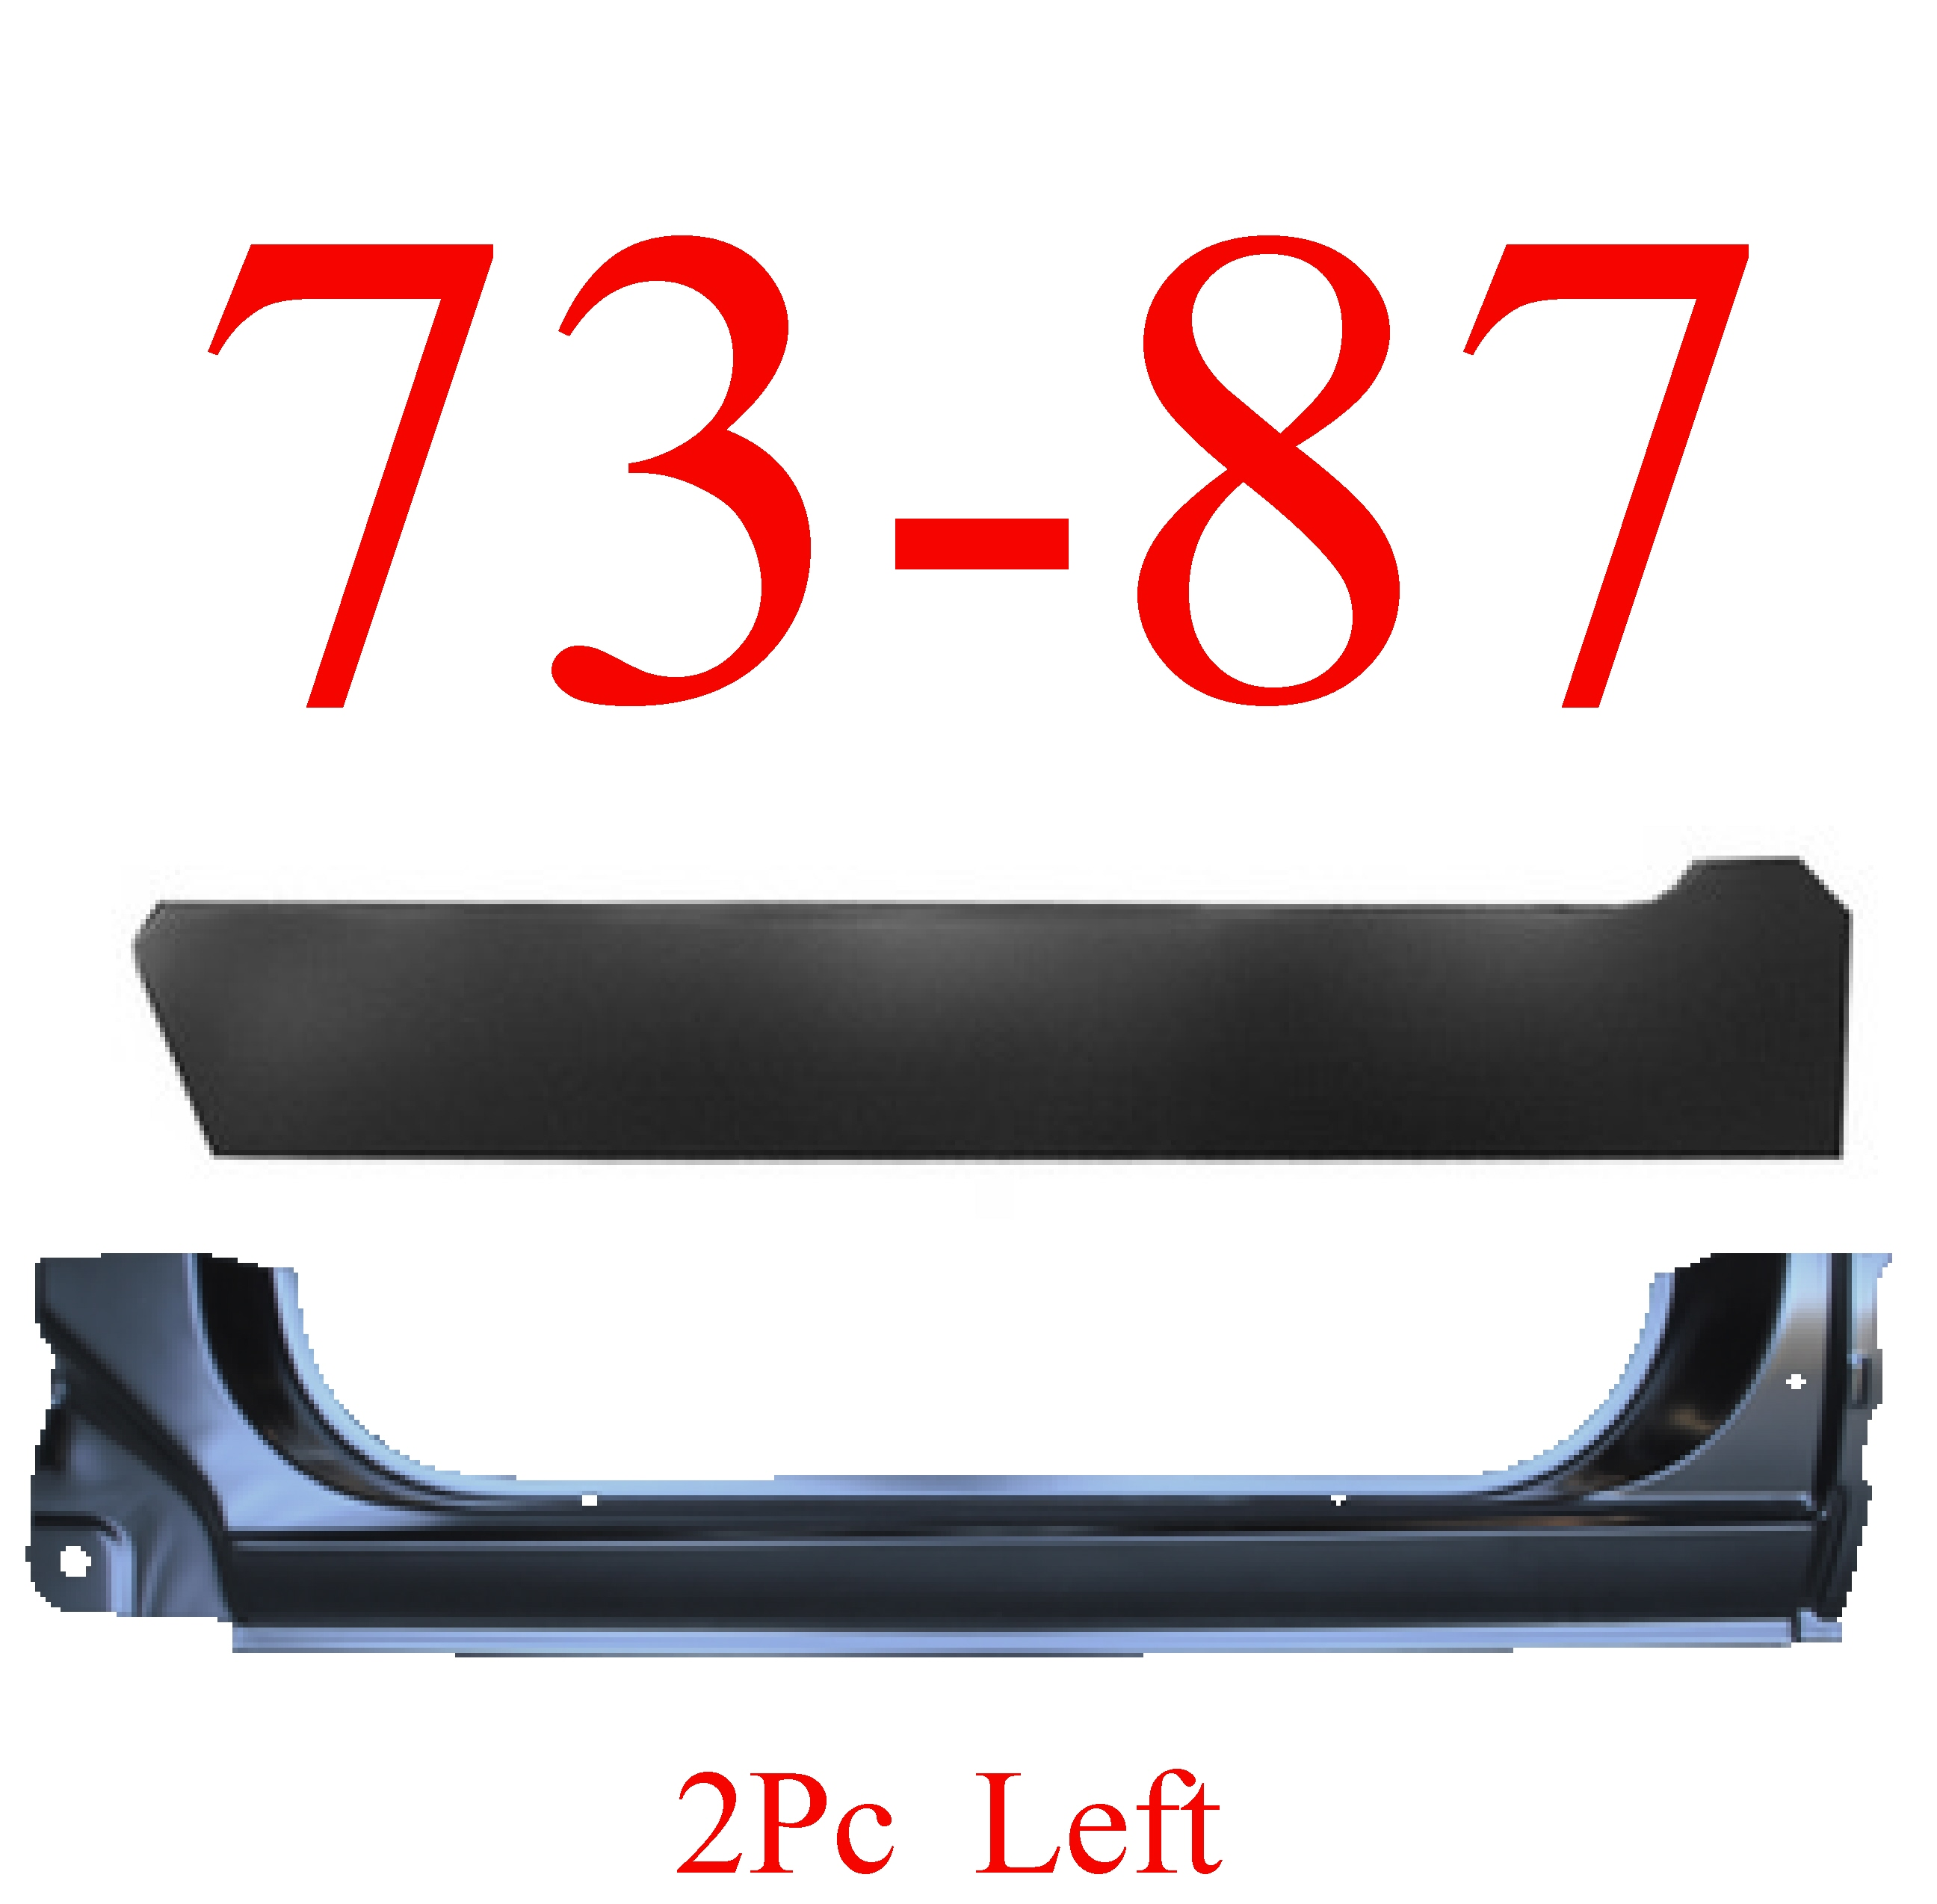 73-87 Chevy 2Pc Left Extended Rocker Panel & Inner